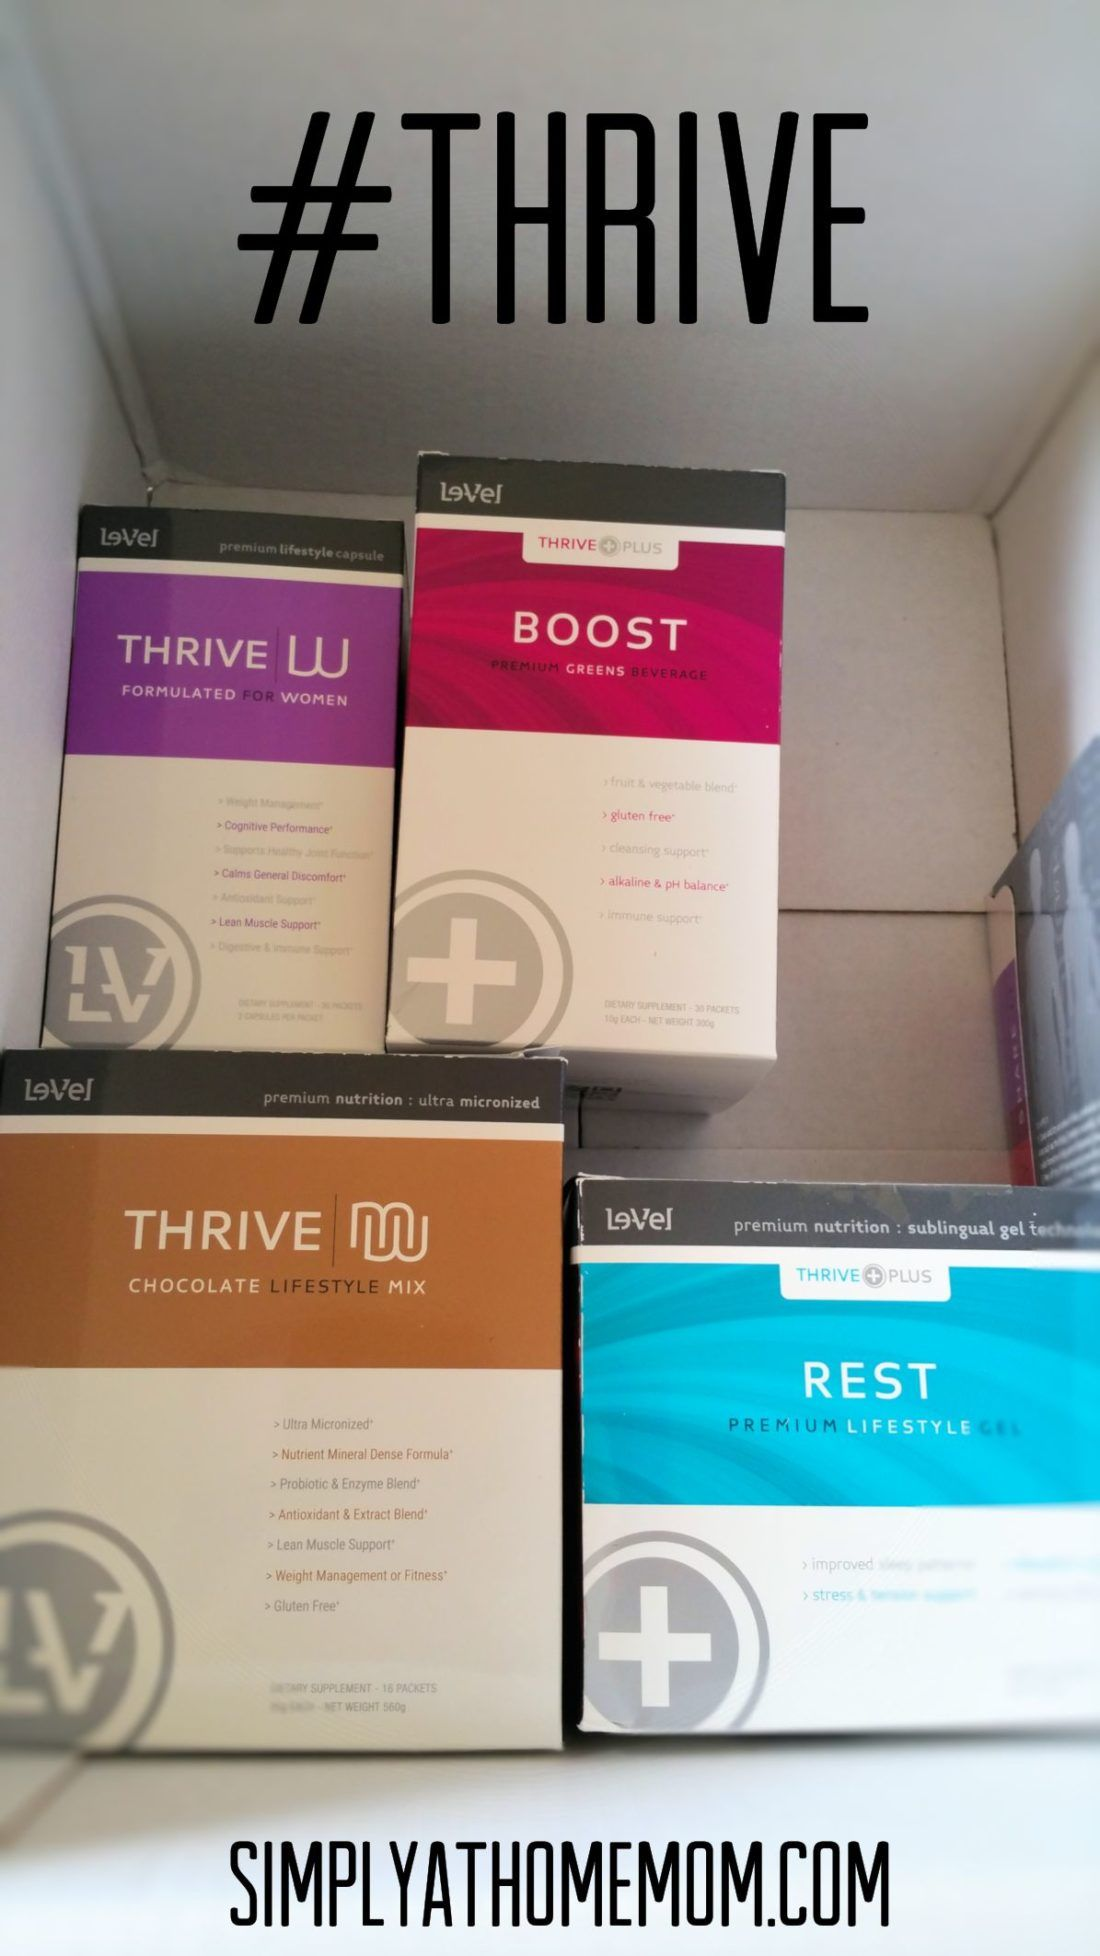 New Year, New You with THRIVE :http://simplyathomemom.com/2017/01/11/new-year-new-you-with-thrive/